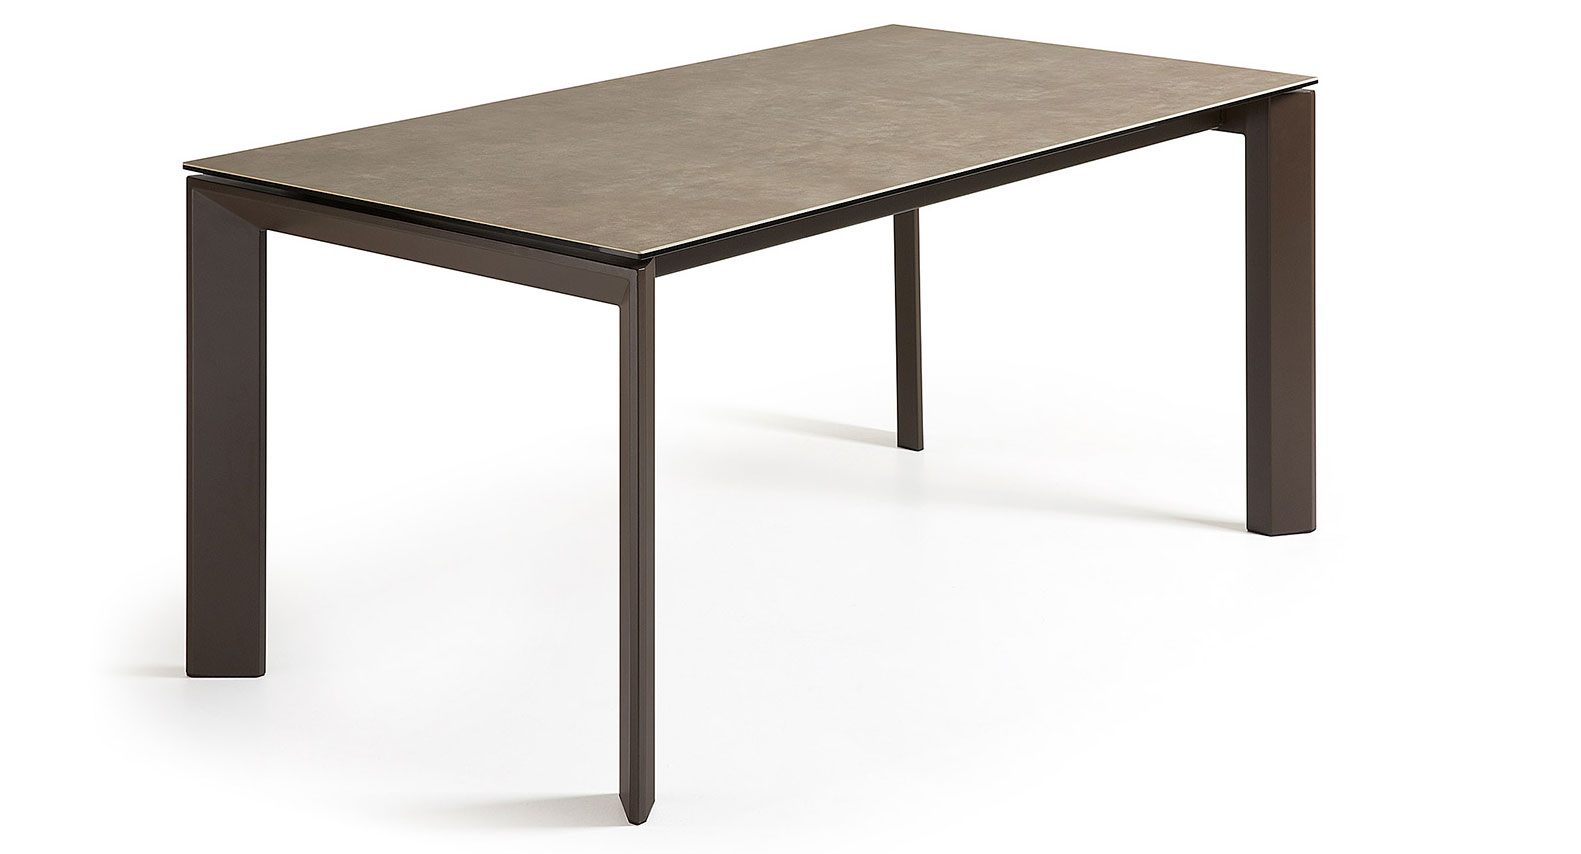 Mesa comedor extensible vulcano humo no disponible en for Comedor extensible